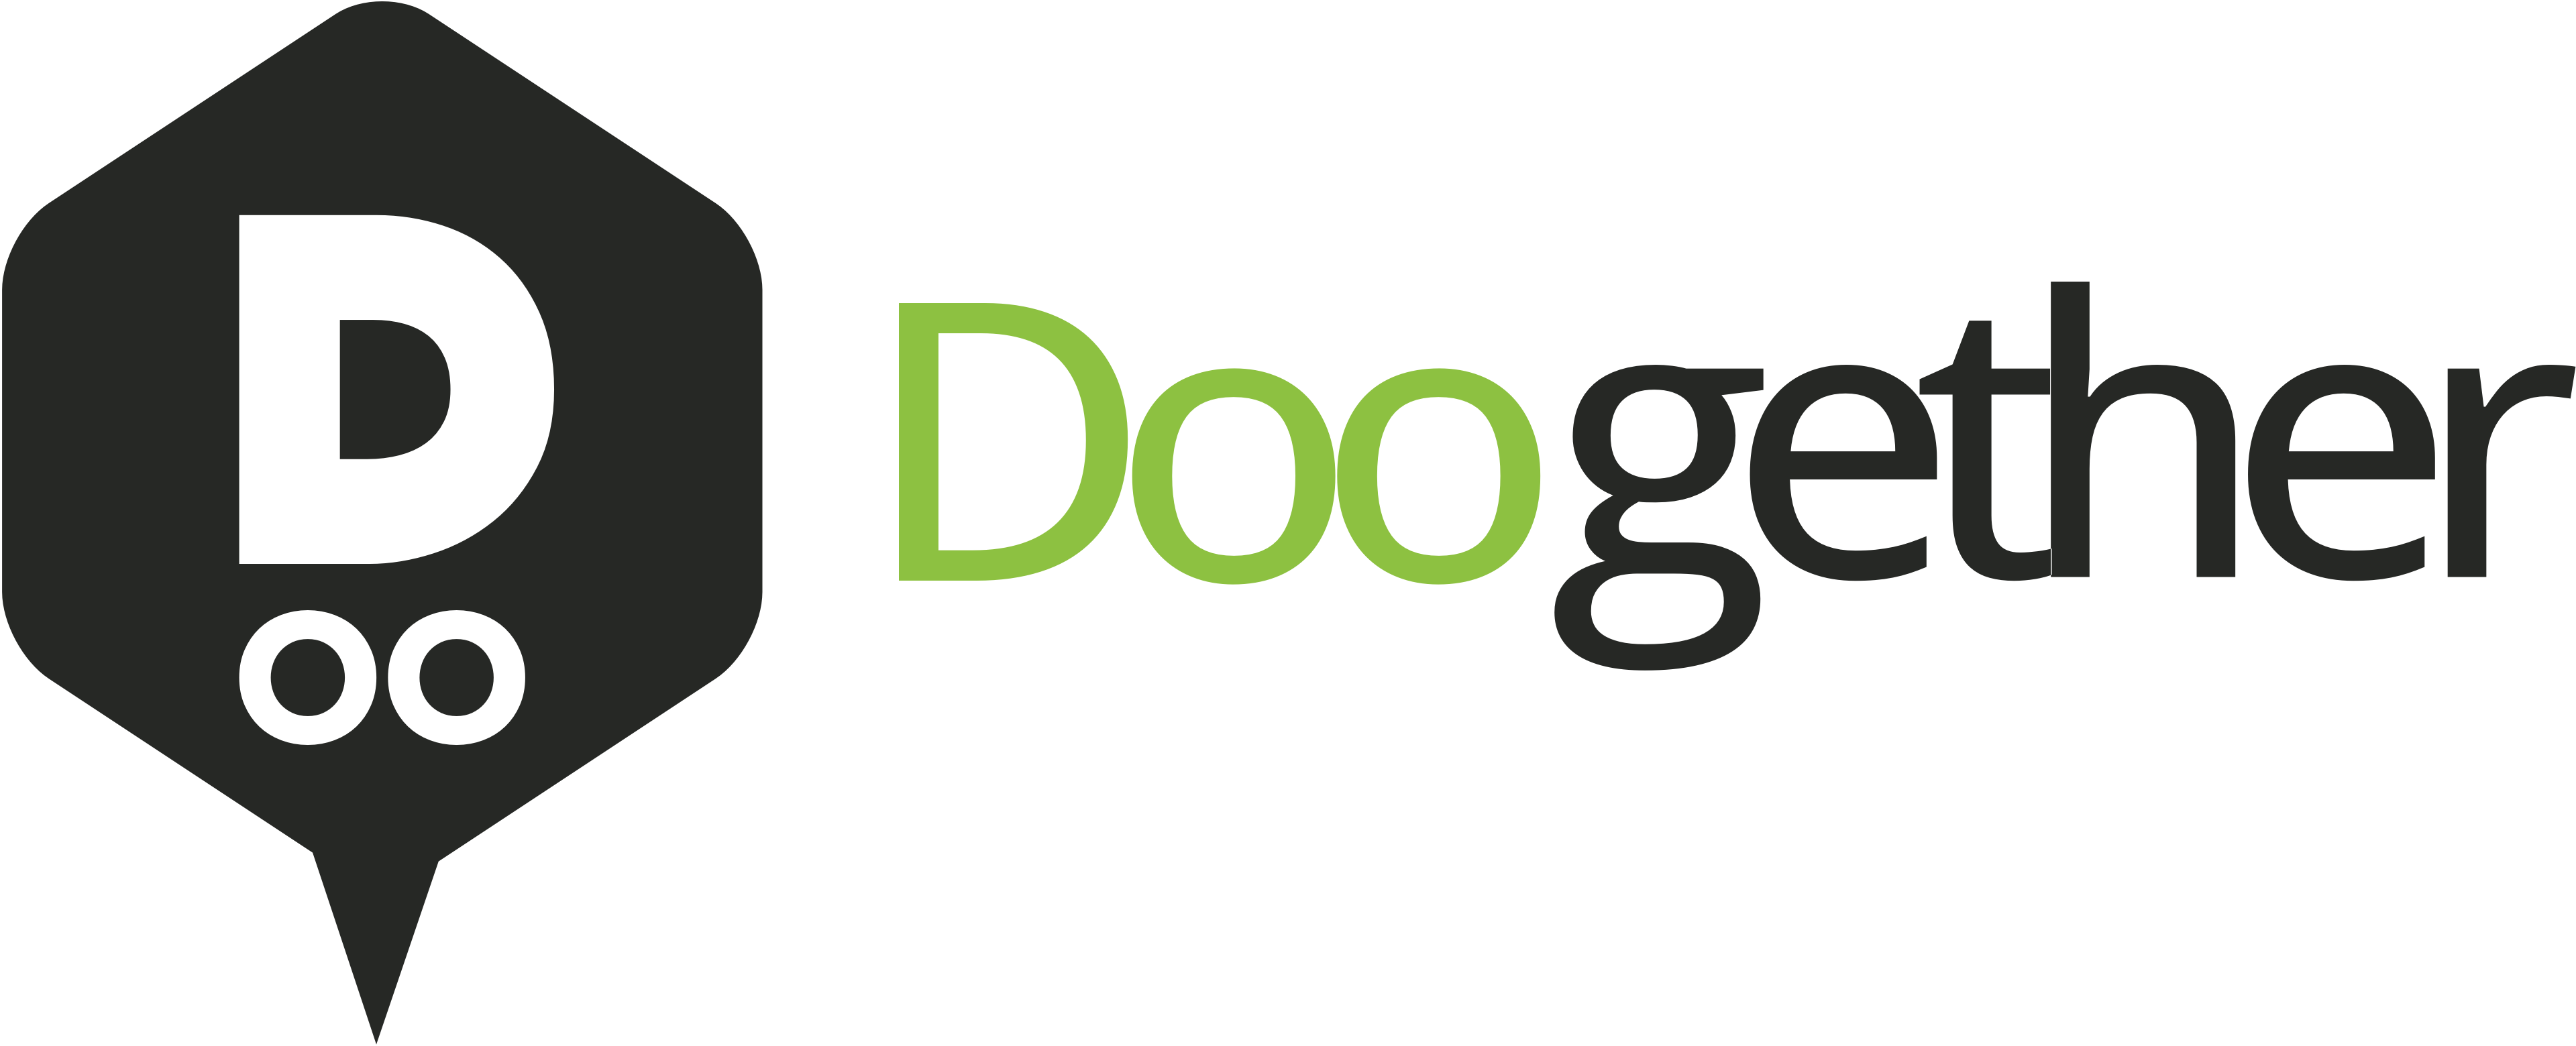 Find Us on Doogether App!